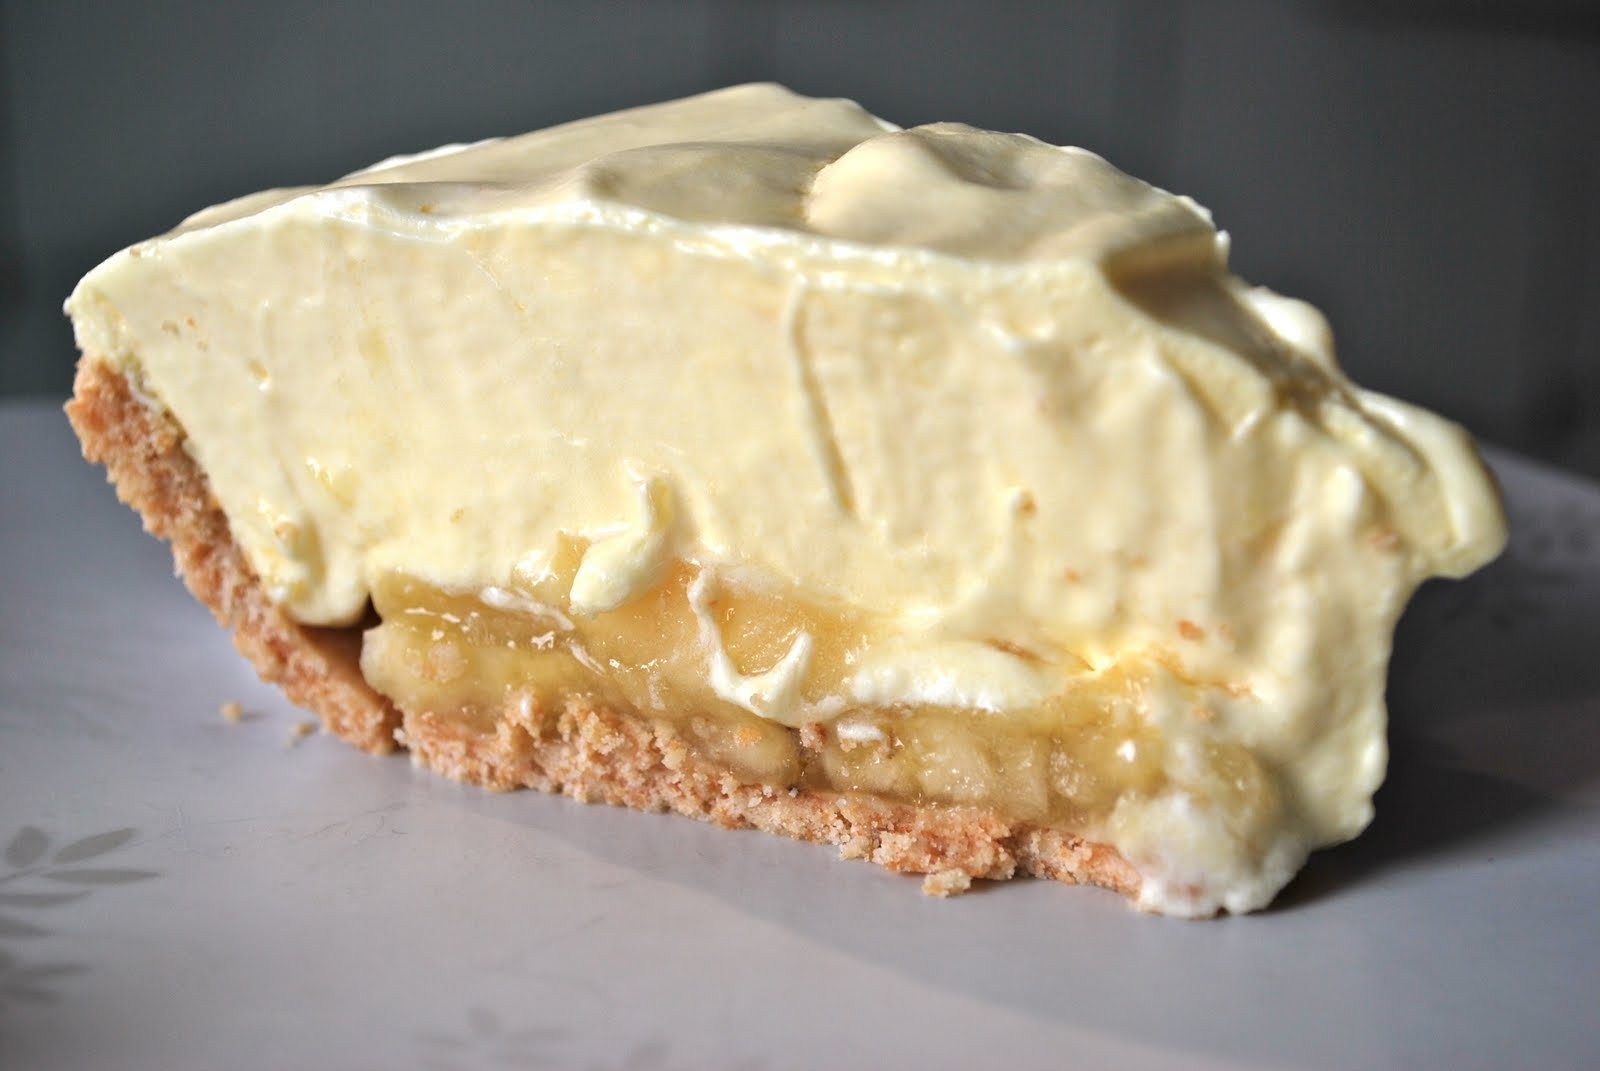 Joyful Baker: Banana Cream Pie